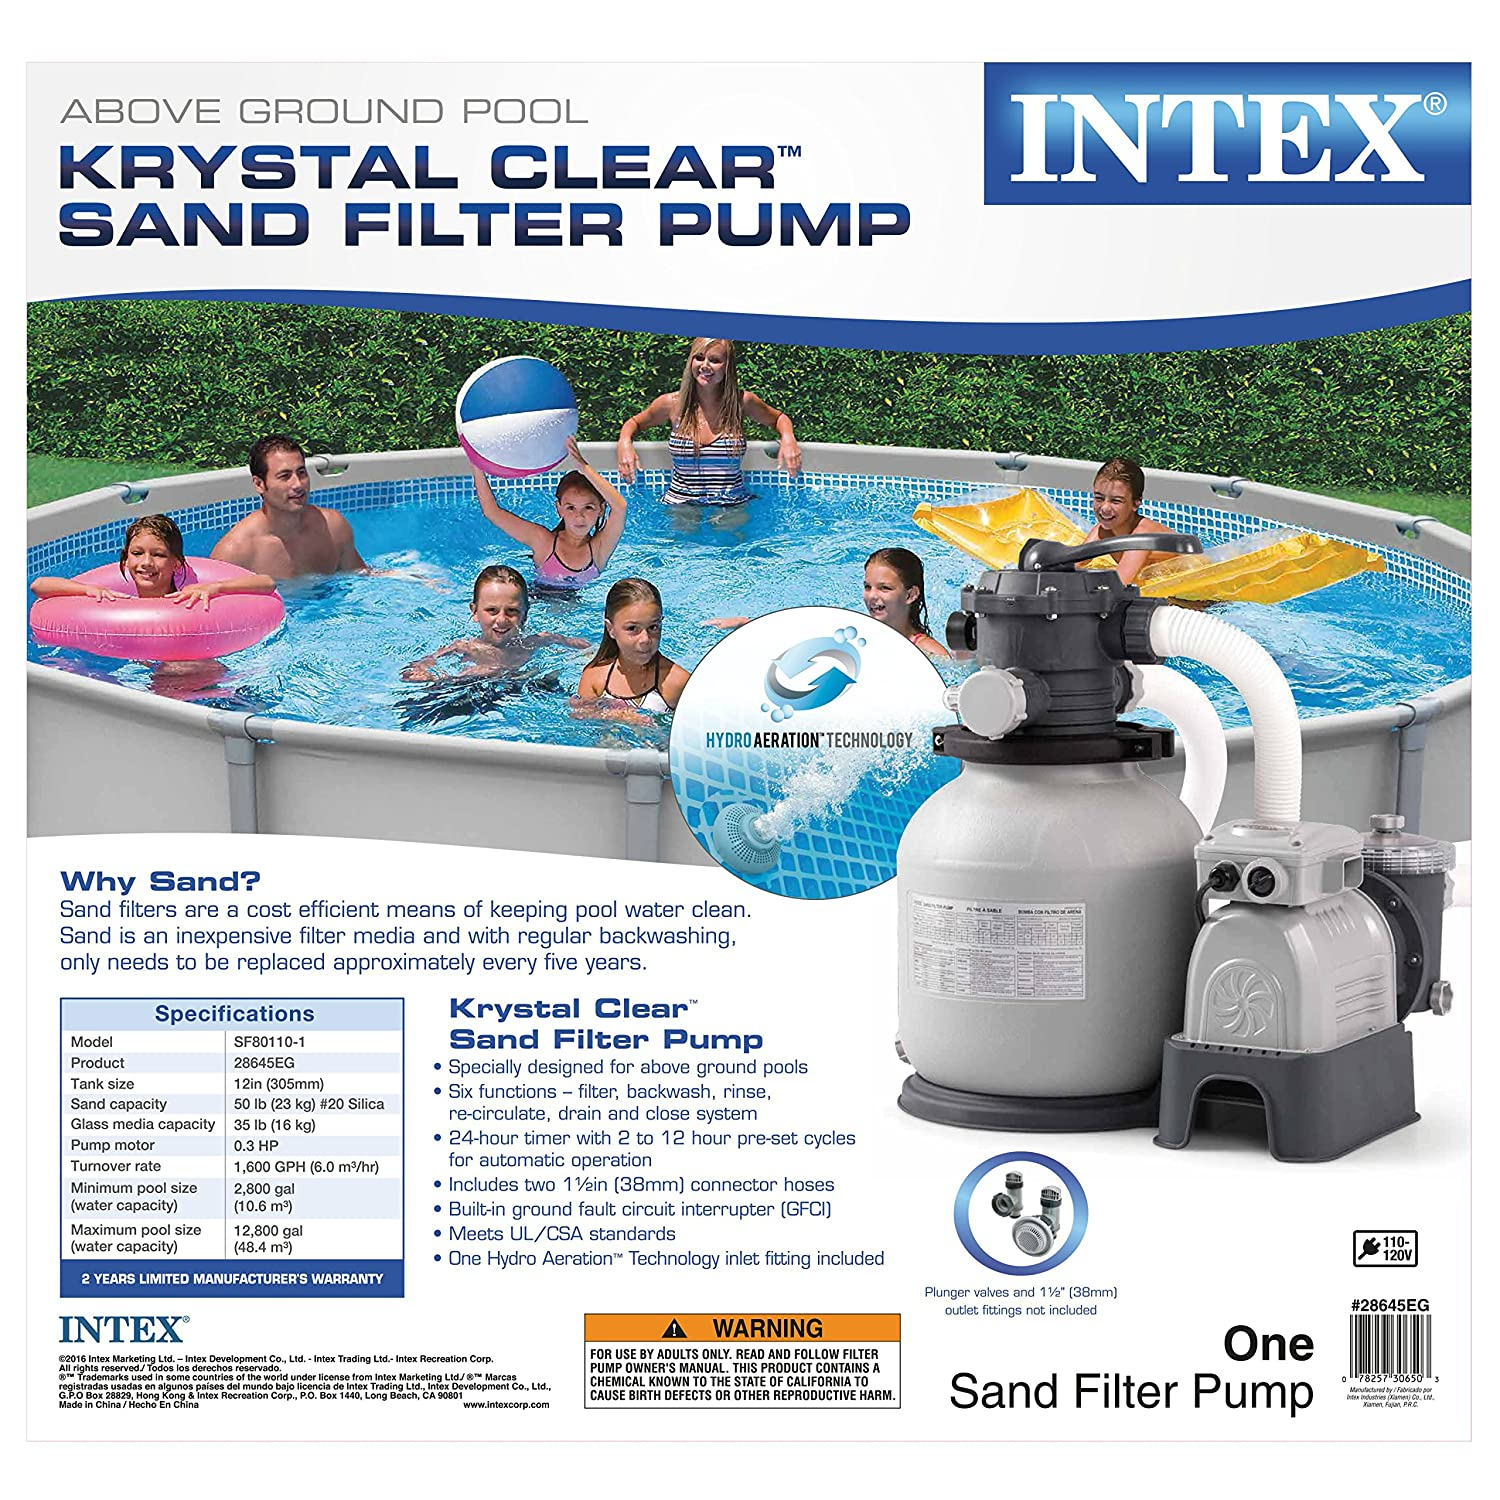 A1XBJjv0vRL._SL1500_ amazon com intex krystal clear sand filter pump for above ground  at bakdesigns.co